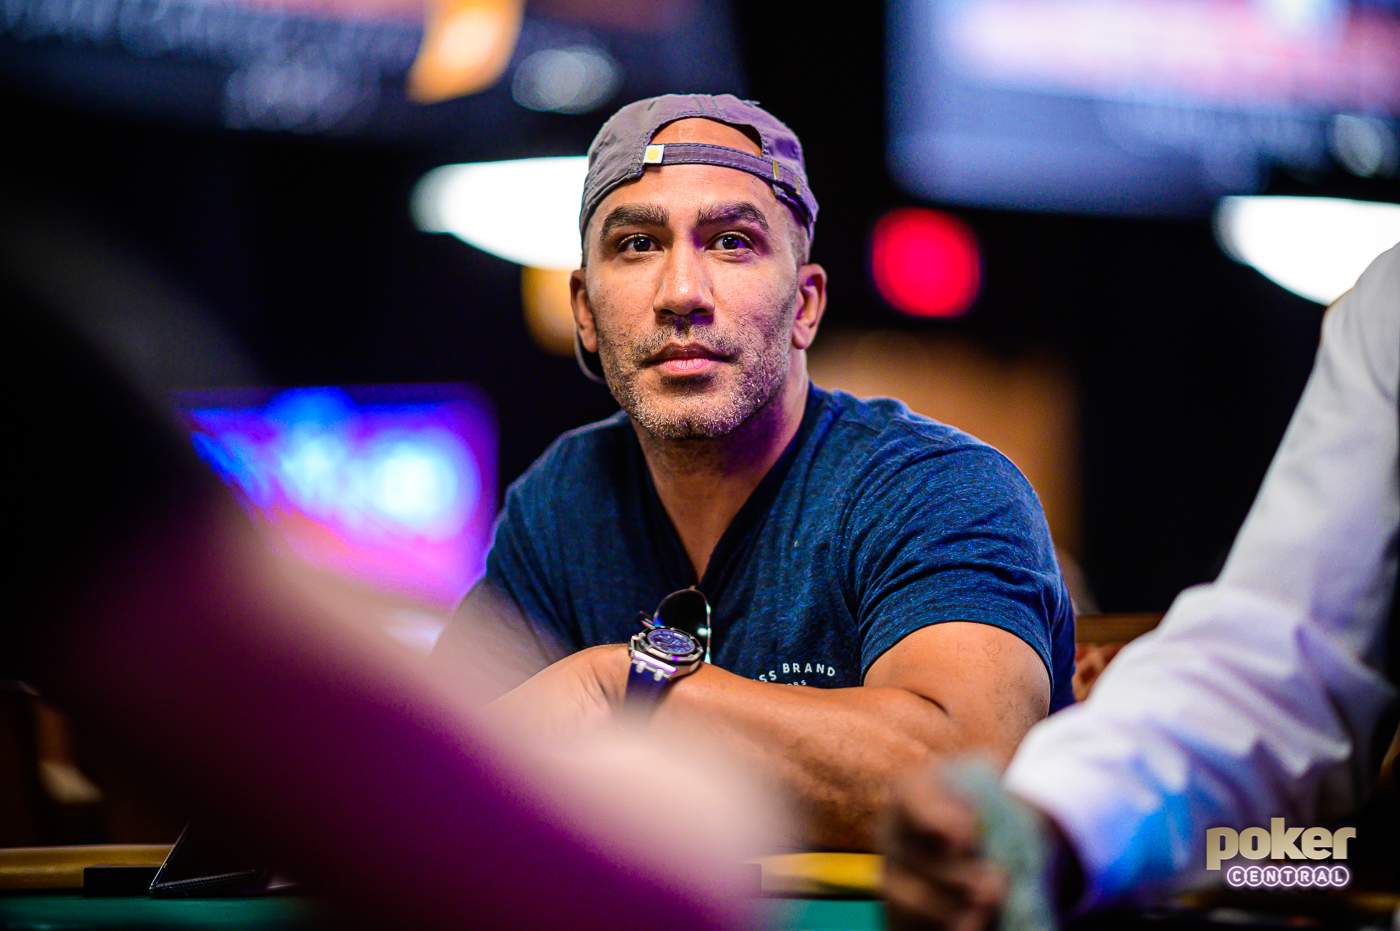 Bill Perkins in action during the World Series of Poker.